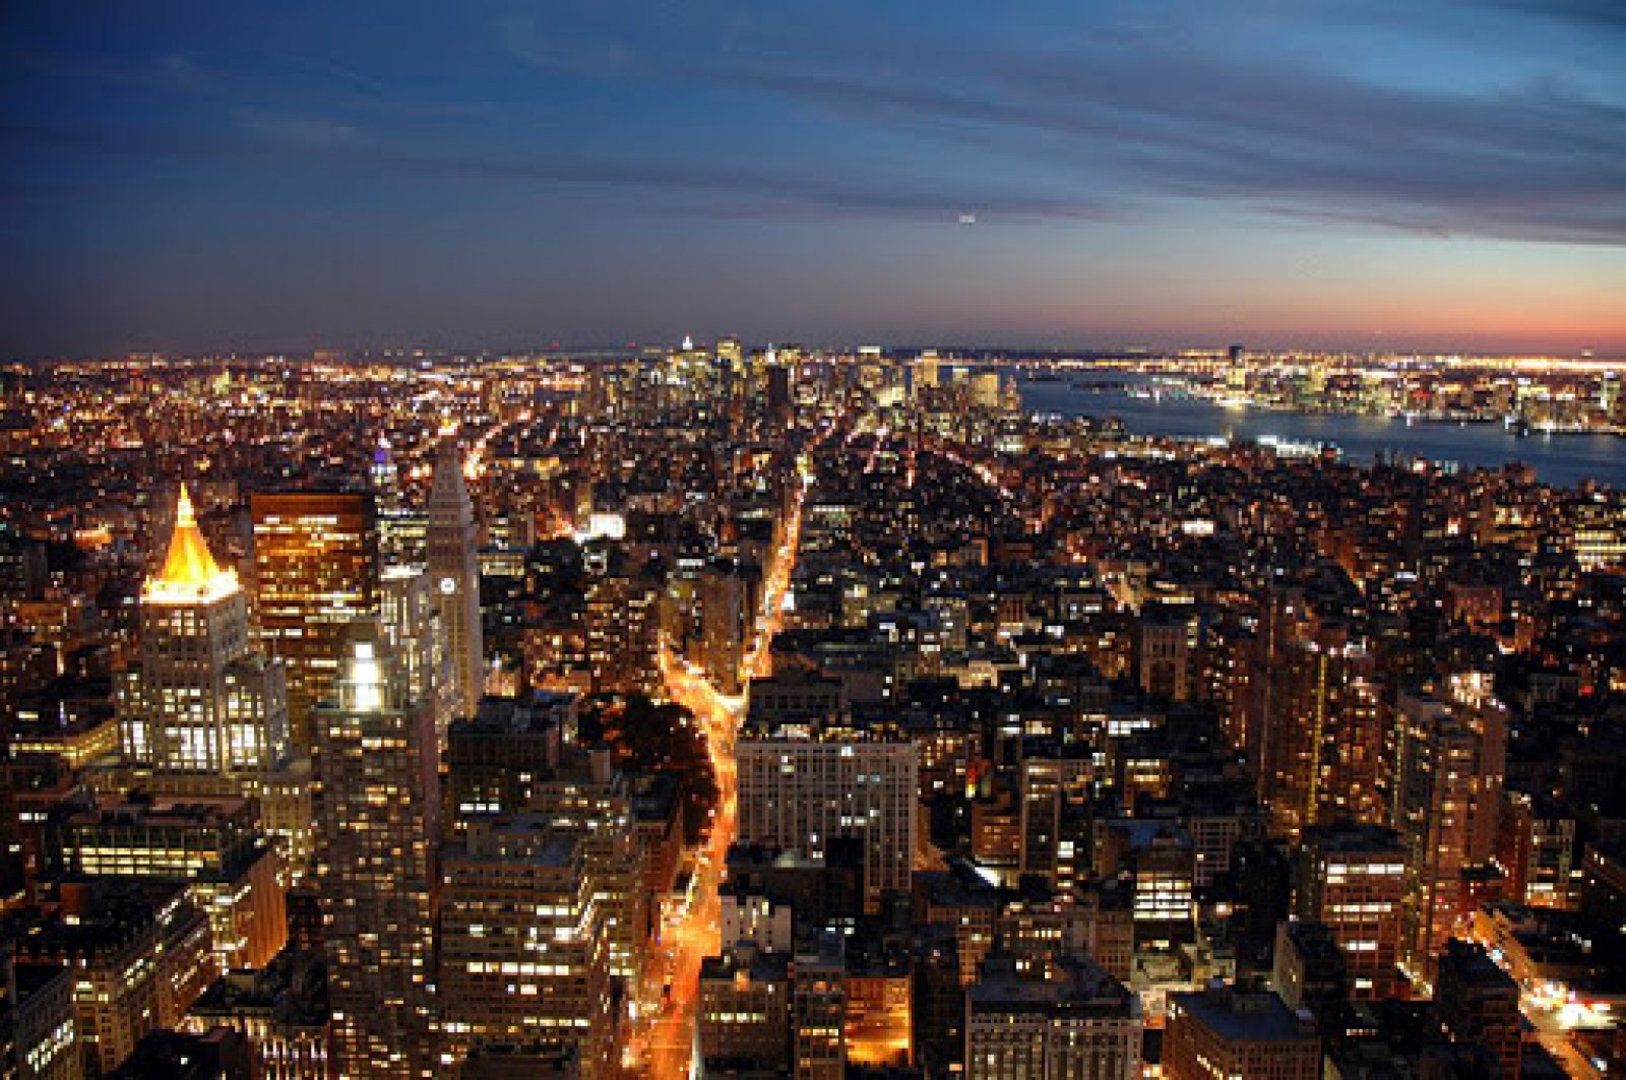 Manhattan at night wallpaper wallpapersafari for Immagini new york hd